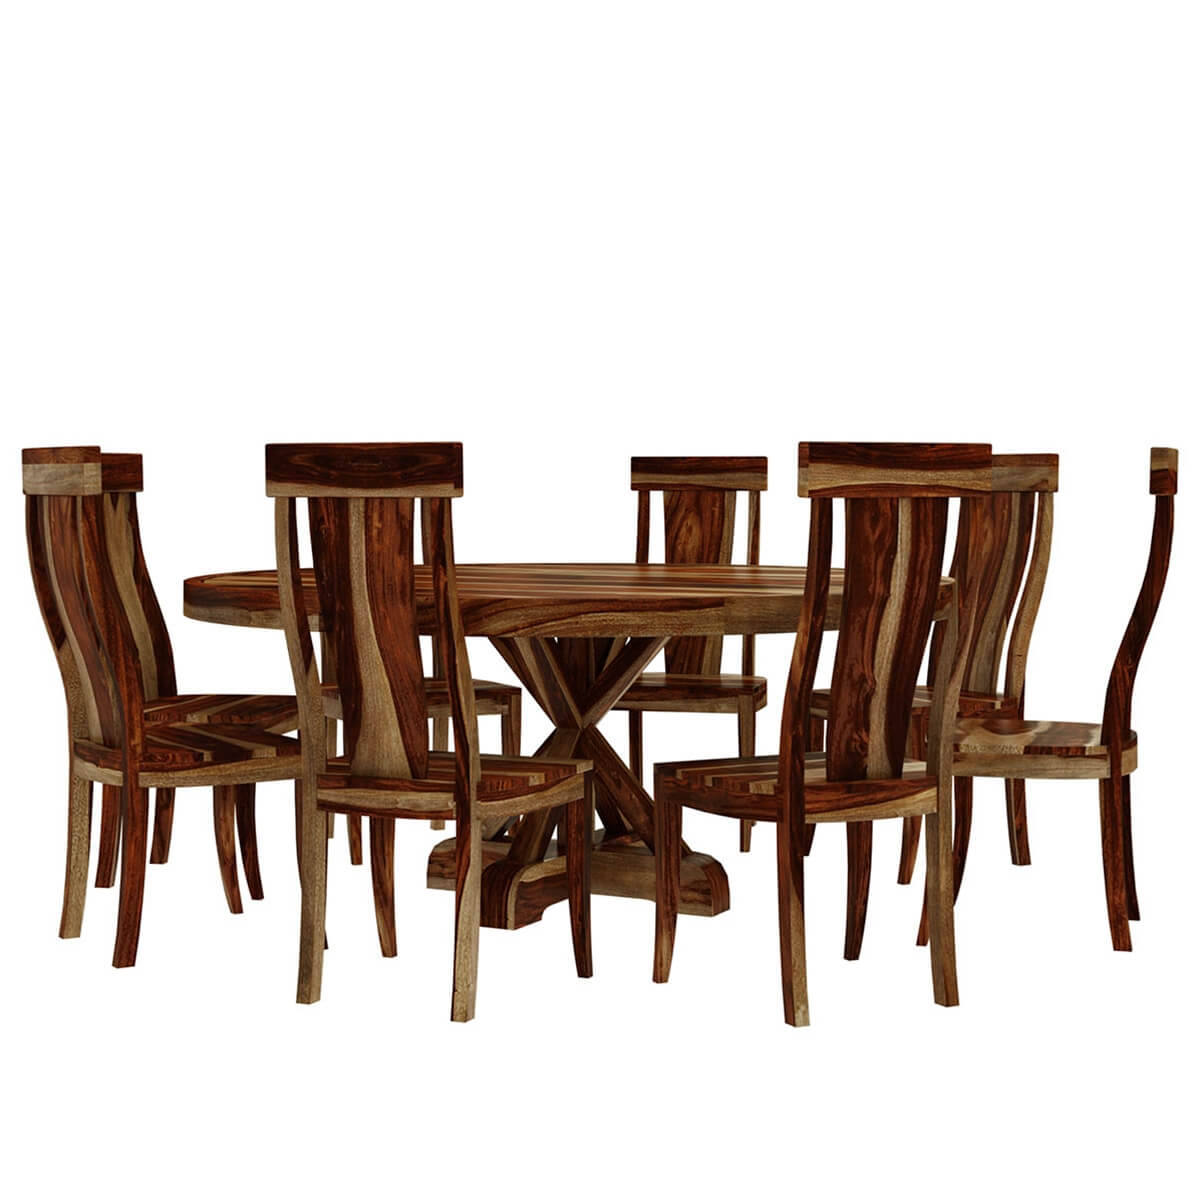 Bedford Rustic Solid Wood X Pedestal 10 Piece Round Dining Room Set In Best And Newest Bedfo 3 Piece Dining Sets (View 19 of 20)